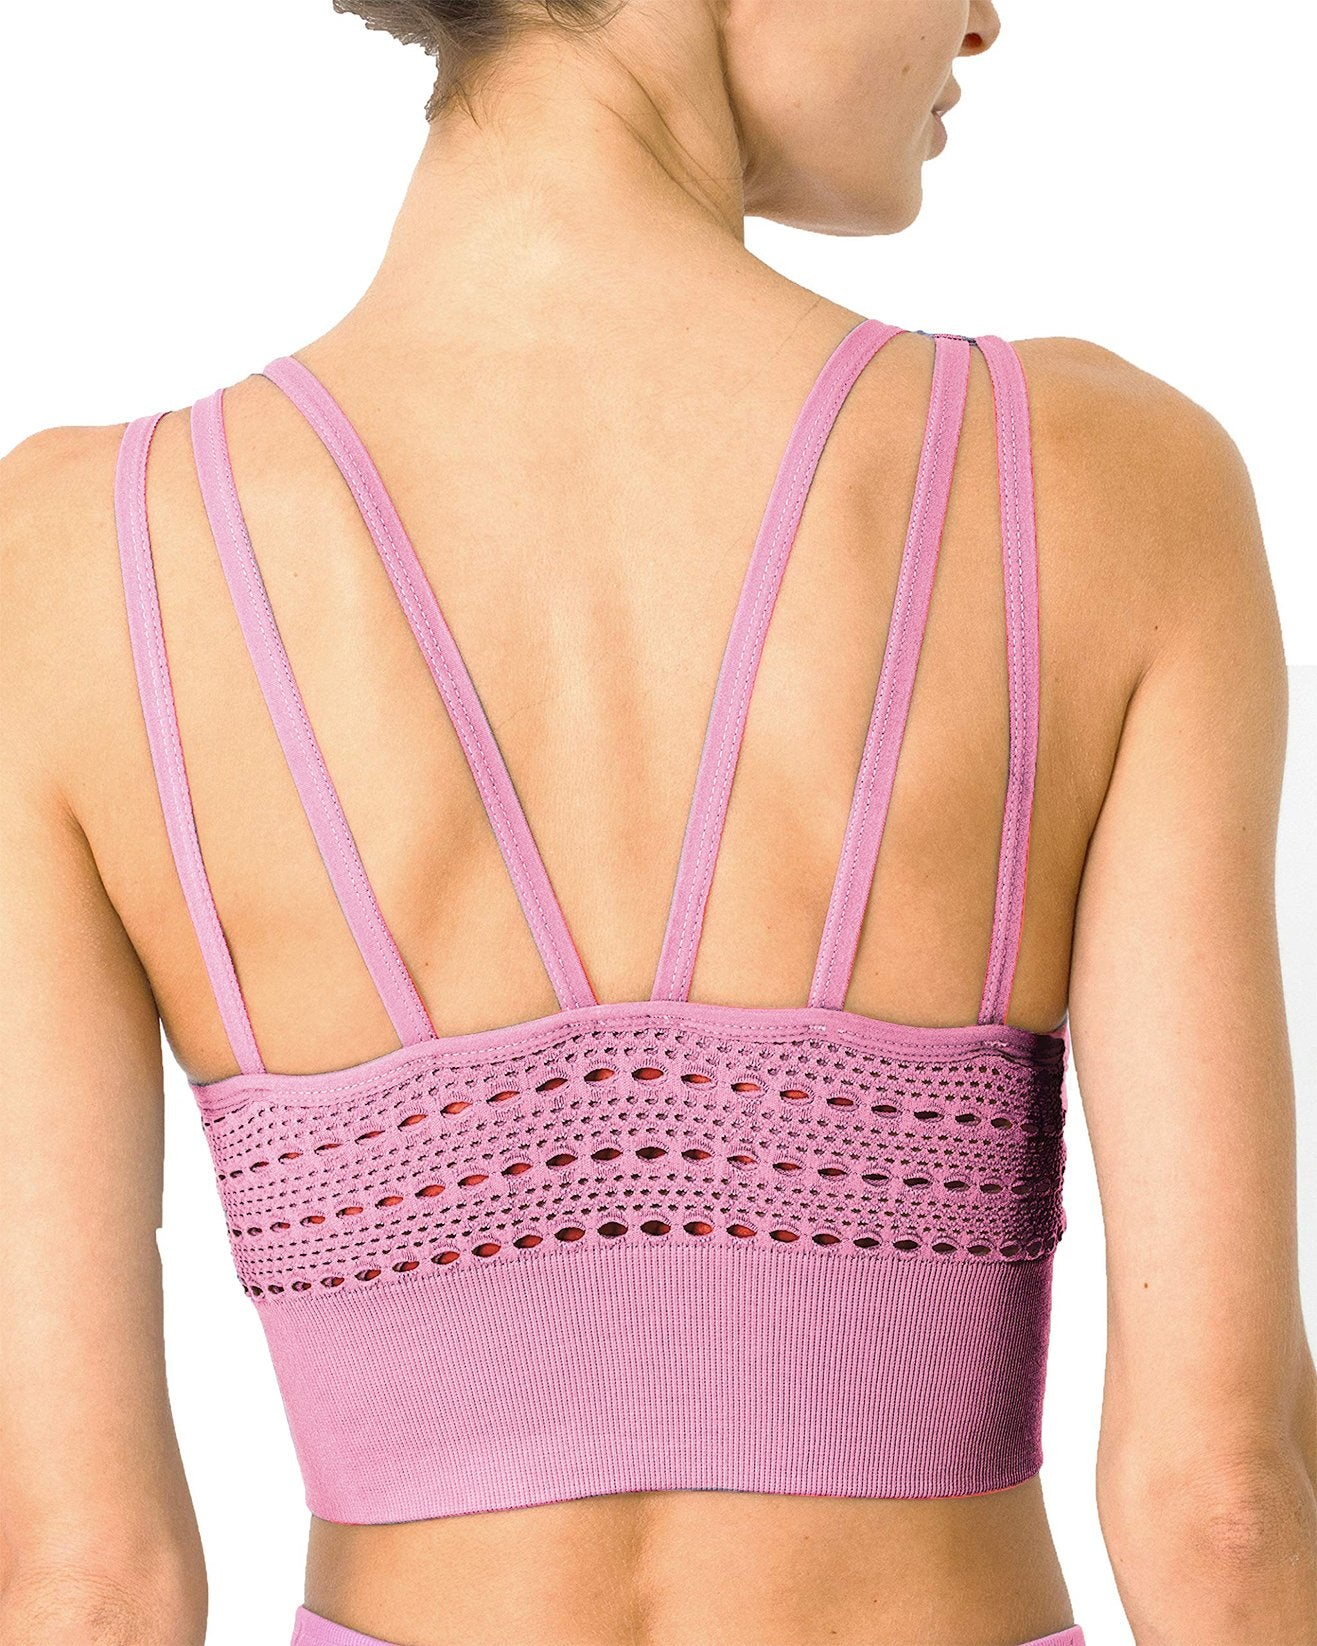 Mesh Seamless Bra with Cutouts - Pink